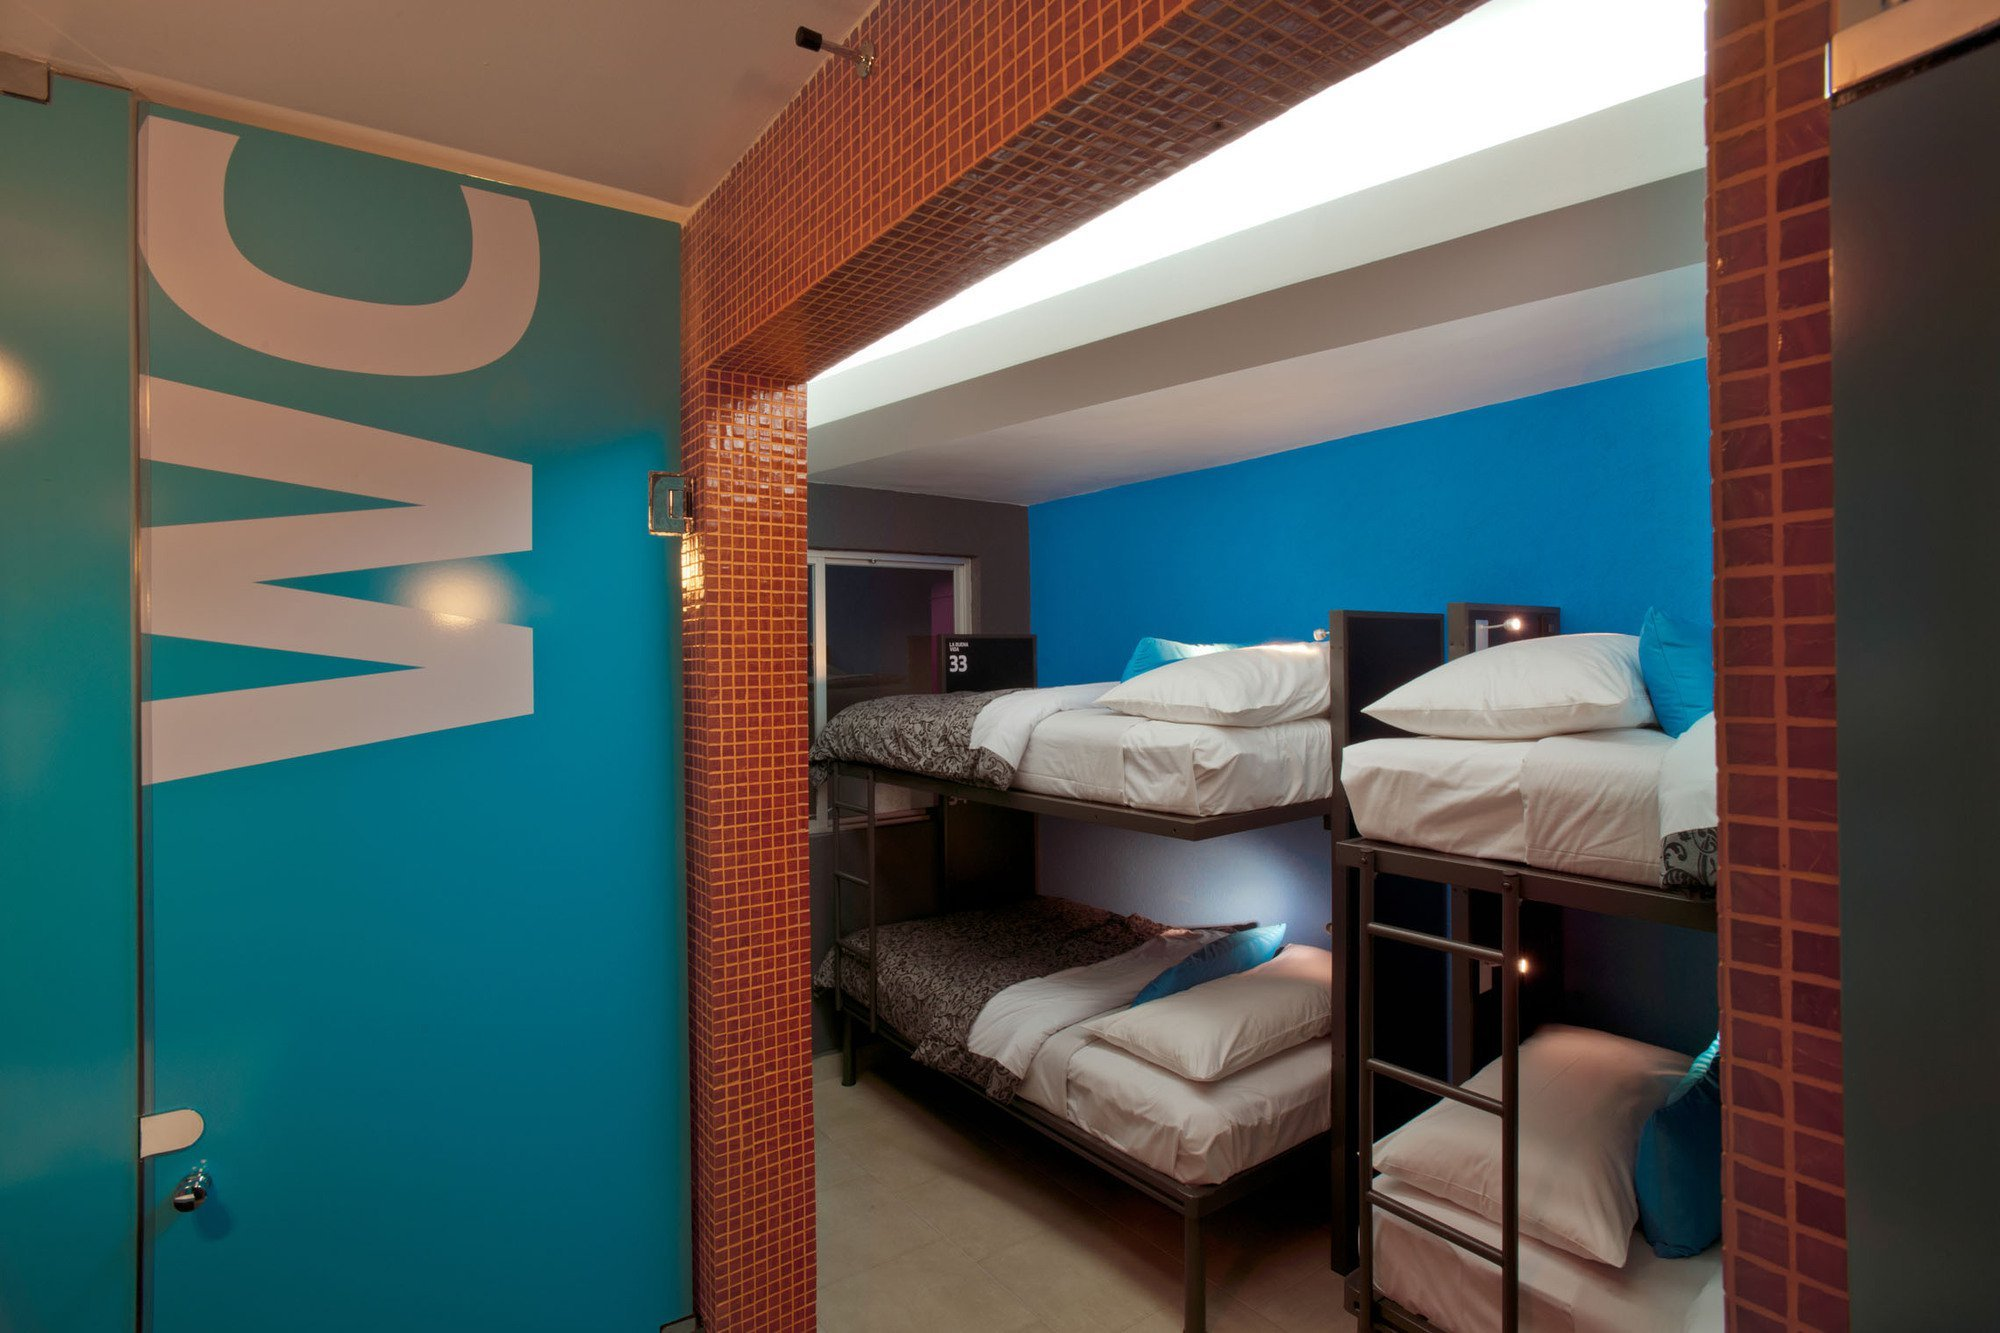 Gallery of hostel la buena vida arco arquitectura for Hostel room interior design ideas